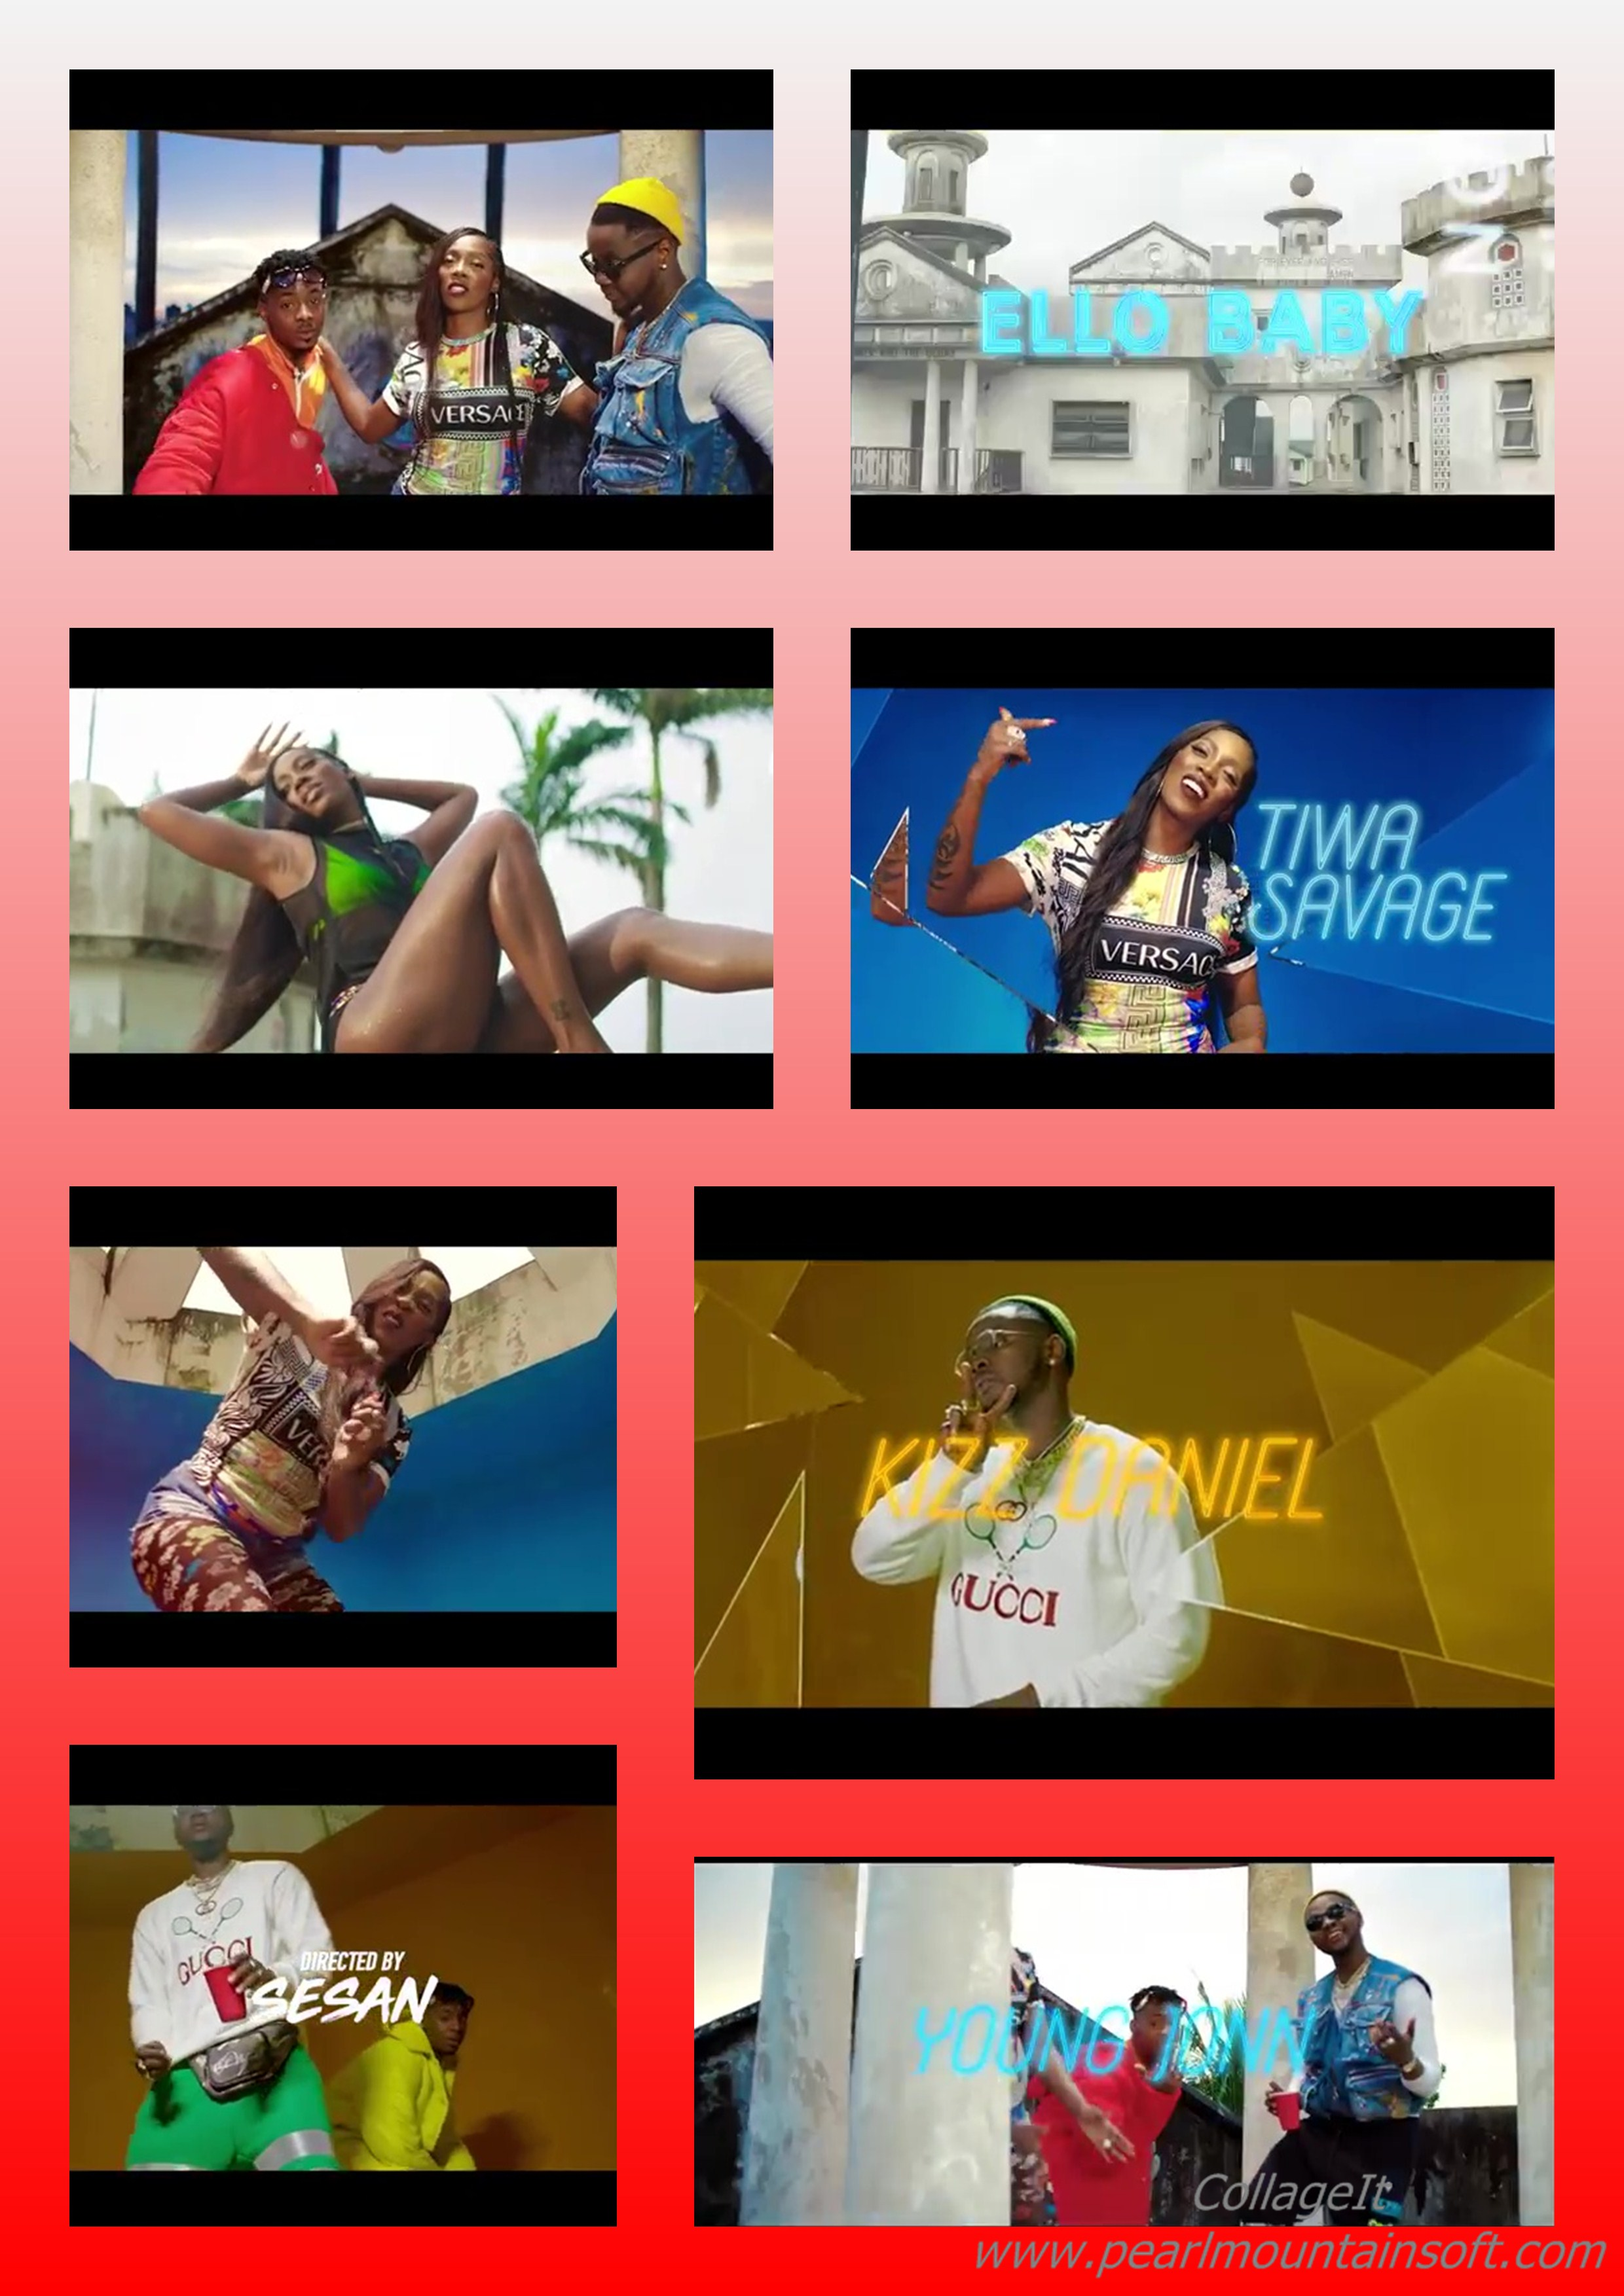 """(+LYRICS+TRANSLATION+MEANIING) MUSIC REVIEW: ELLO BABY BY TIWA SAVAGE FT KIZZ DANIEL AND YOUNG JOHN """"A FAST-BEAT, YET NOT ON THE DJ'S PLAYLIST!"""""""